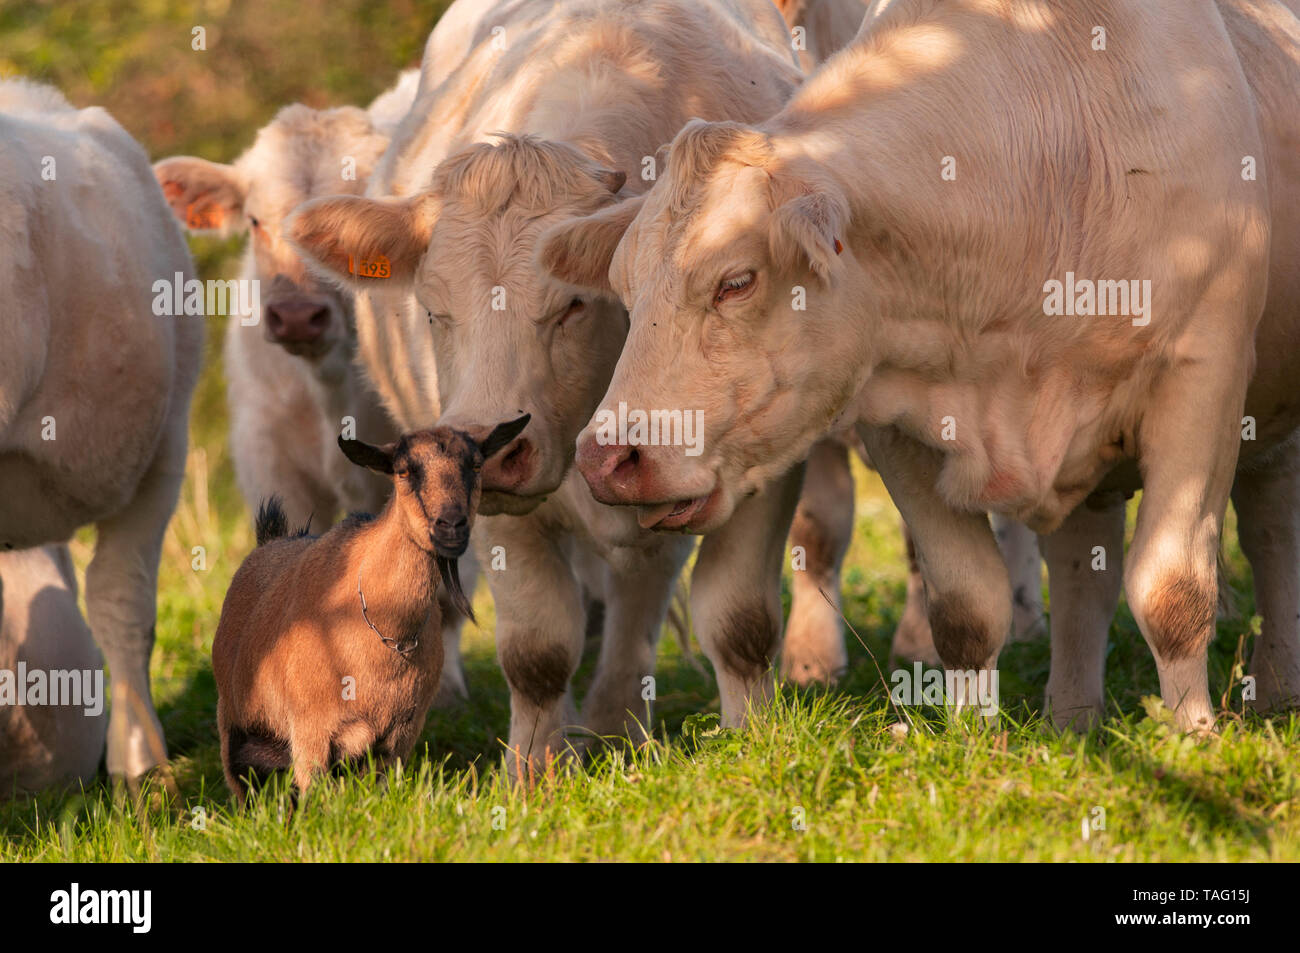 Dwarf goat of race motte (without horn) in the middle of a herd of cows of Charolais race. Orphan, the little goat was collected and adopted by cows.  - Stock Image